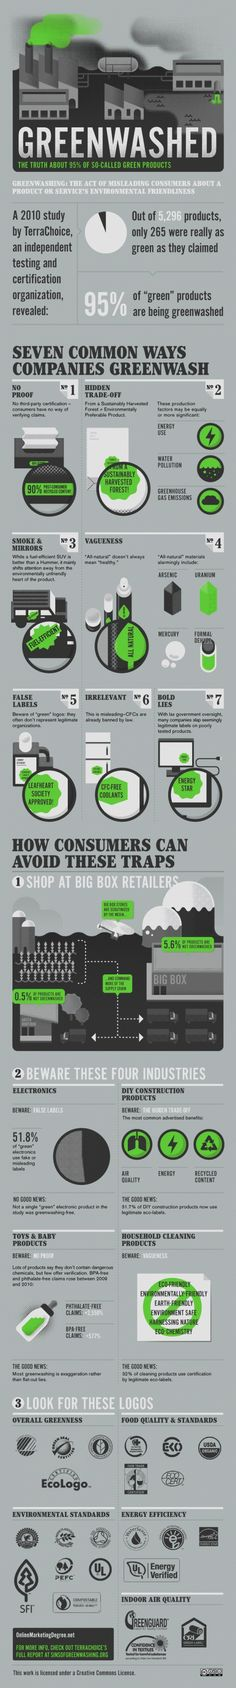 When consumers think green, sustainability is an issue that most welcome and strive for. However, when companies abuse that, consumers are misled by their marketing tactics — or 'Greenwashed'. This infographic illustrates 7 common ways that companies 'greenwash' and how consumers can avoid those traps.